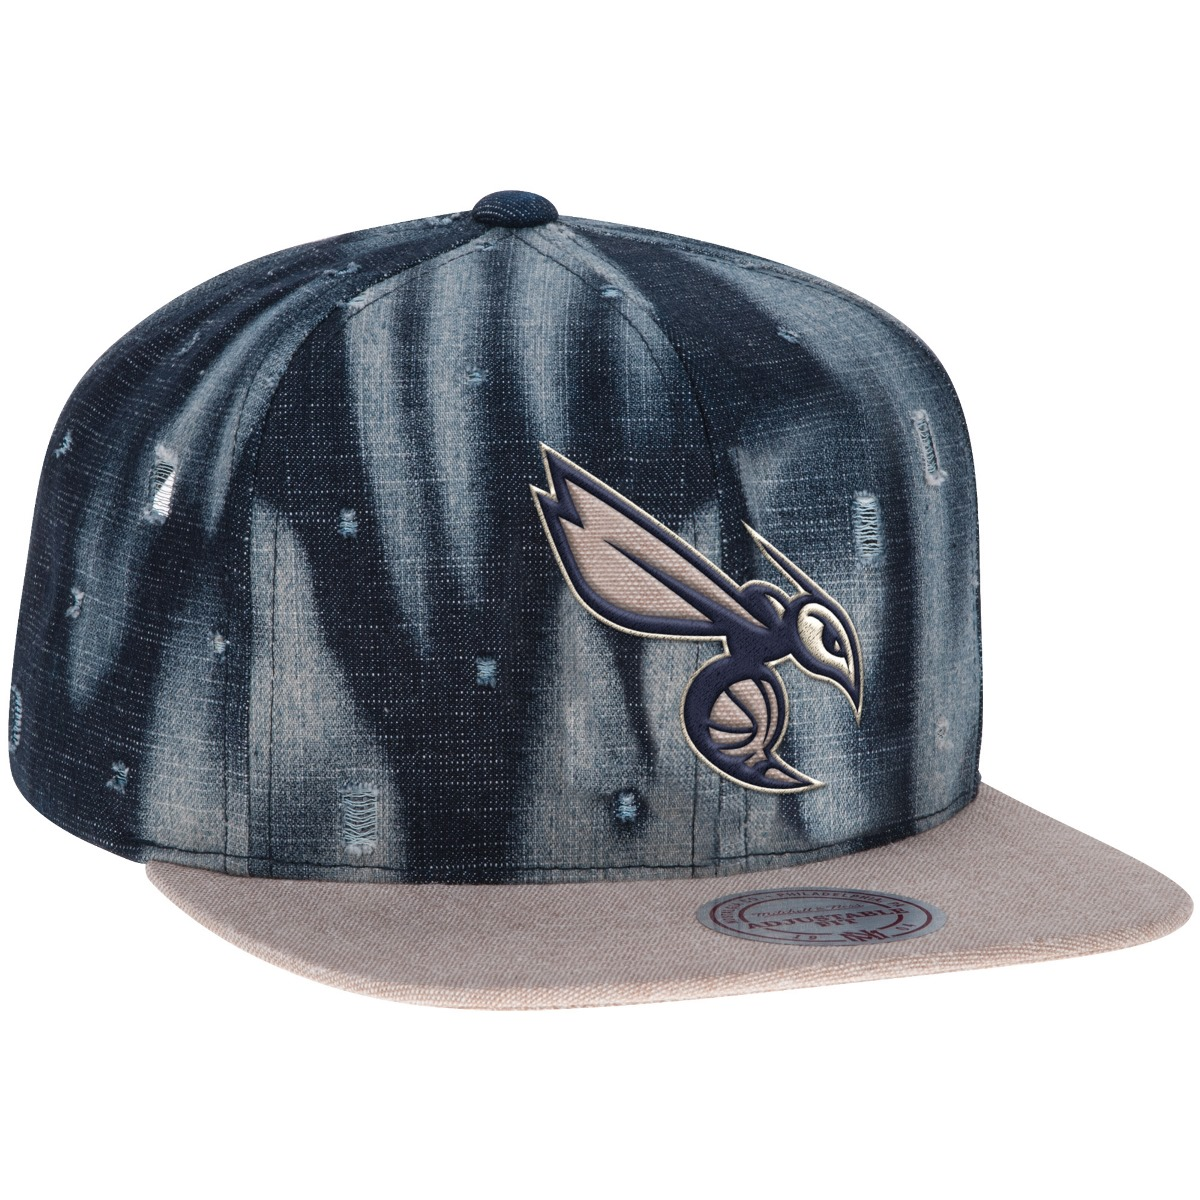 "Charlotte Hornets Mitchell & Ness NBA ""Torn Denim"" Snap Back Hat"